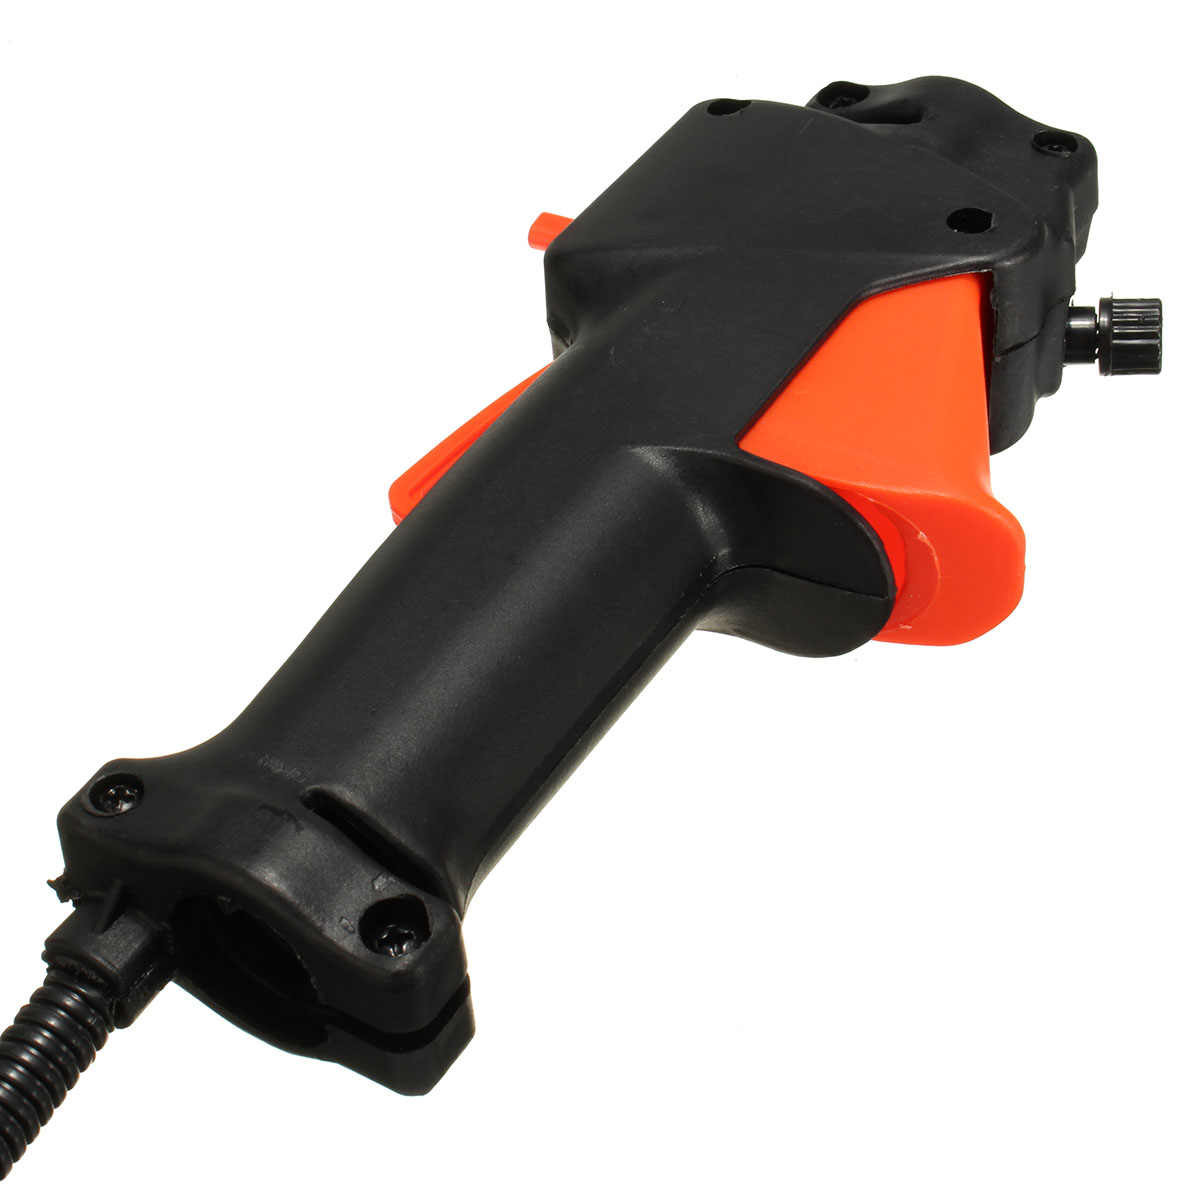 Hot Sale 26 Mm Menangani Switch Throttle Memicu Kabel untuk Strimmer Pemangkas Cutter dengan Switch Kabel